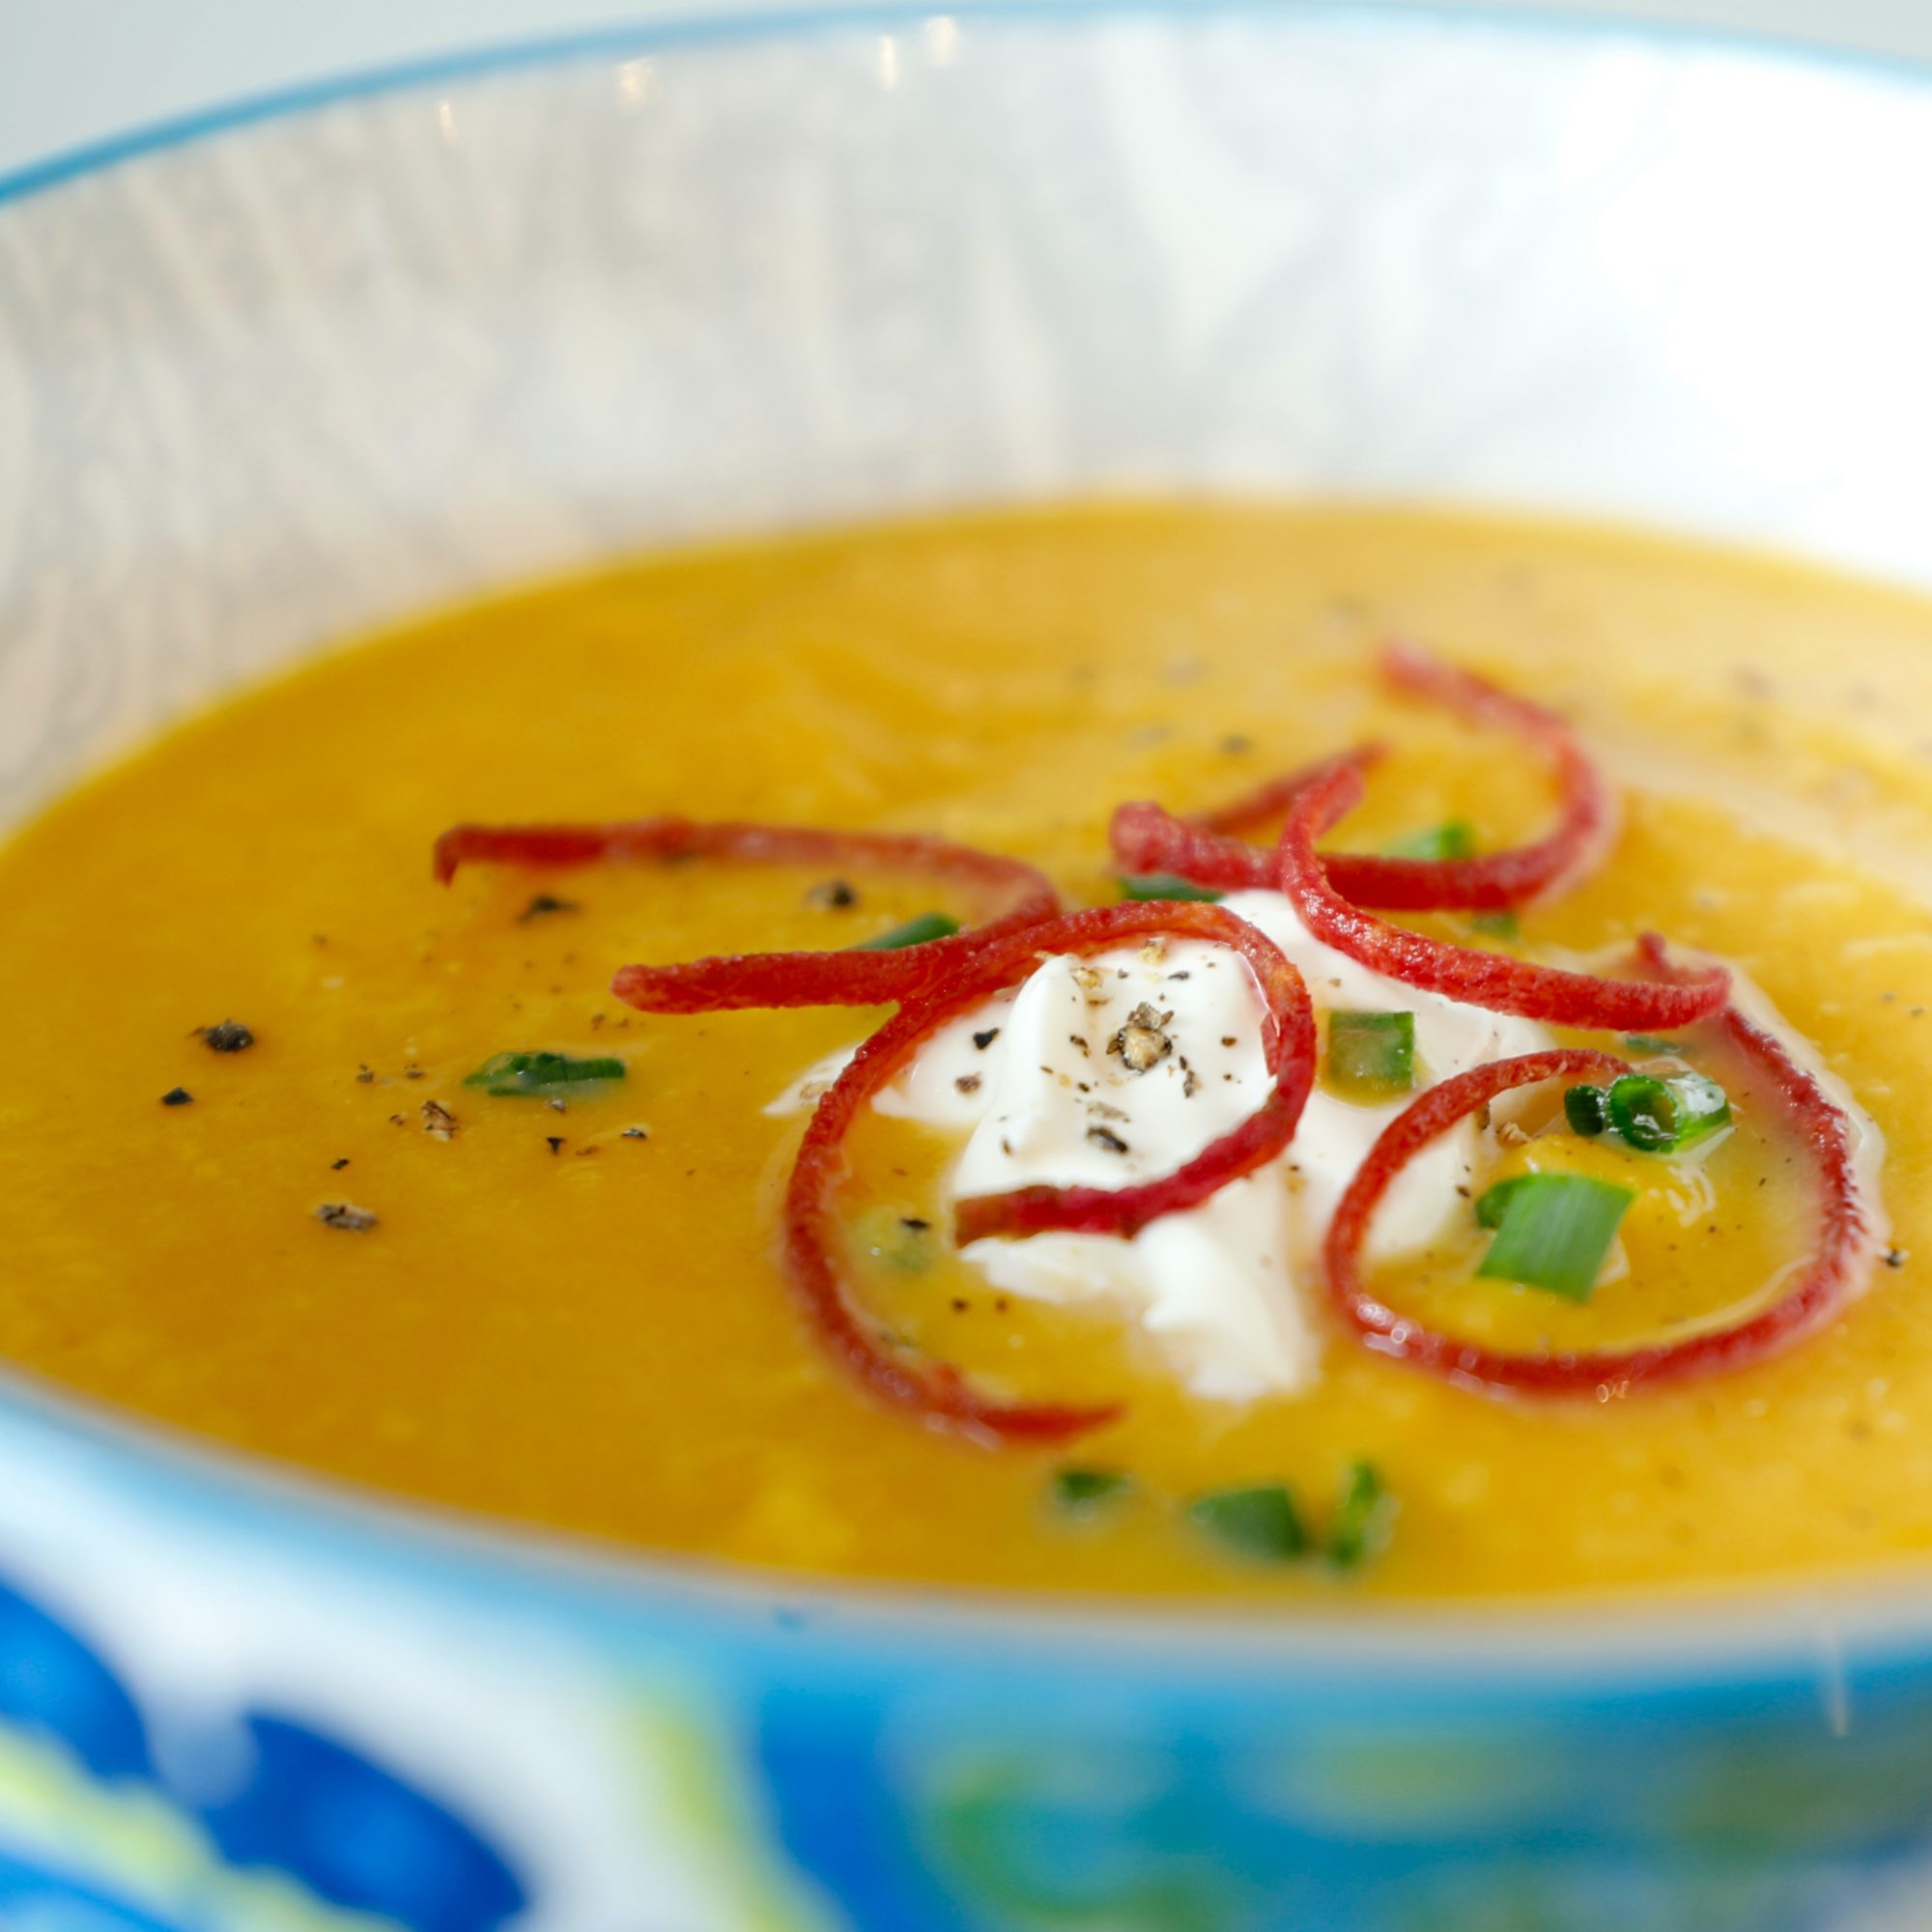 butternut squash soup with sour cream garnish in a blue and white bowl